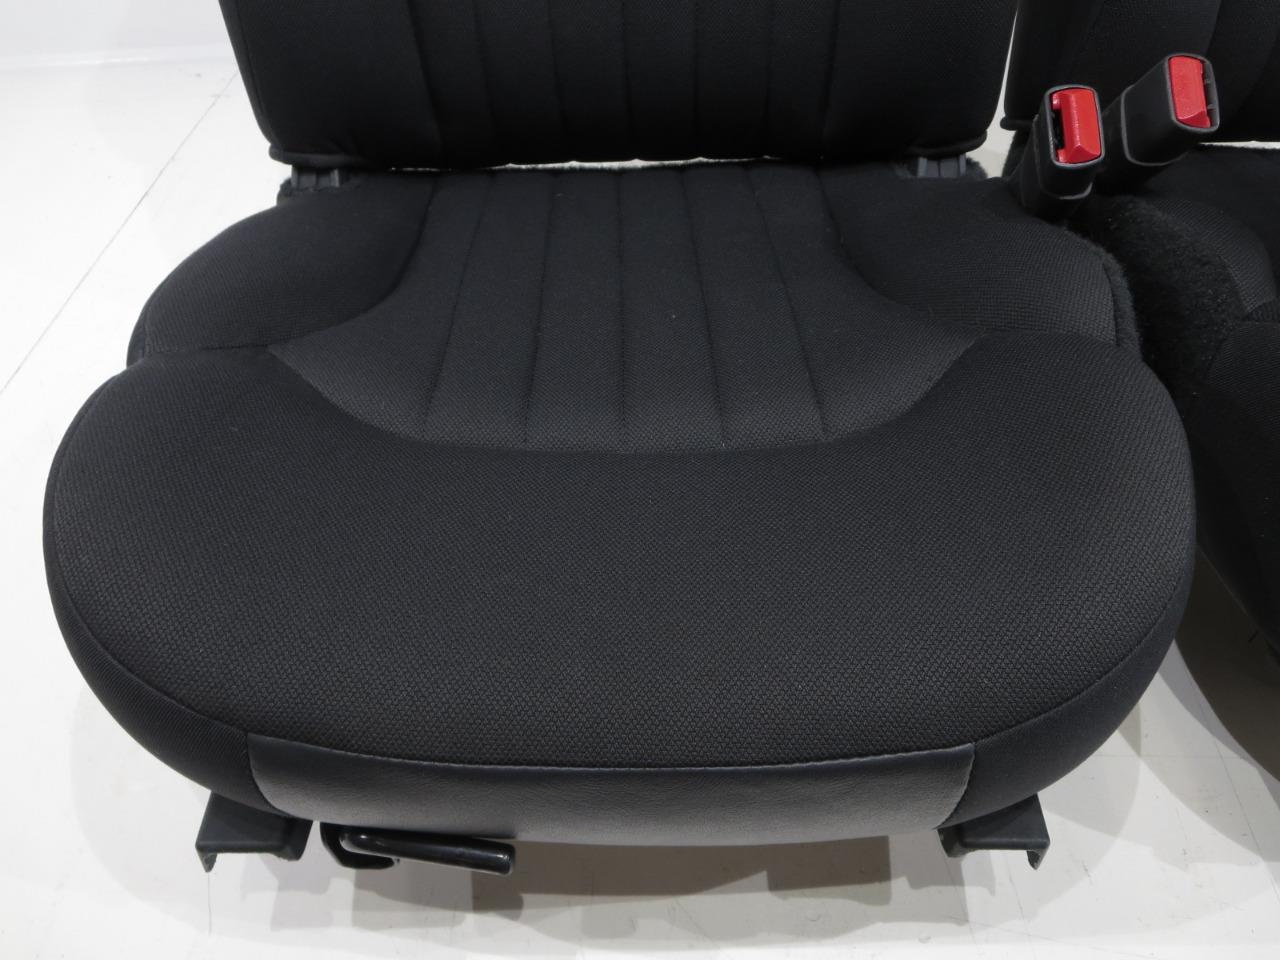 Fabulous Chevy S 10 Blazer Gmc Jimmy Oem Front Seats 1995 2000 2001 2002 2003 2004 2005 Caraccident5 Cool Chair Designs And Ideas Caraccident5Info